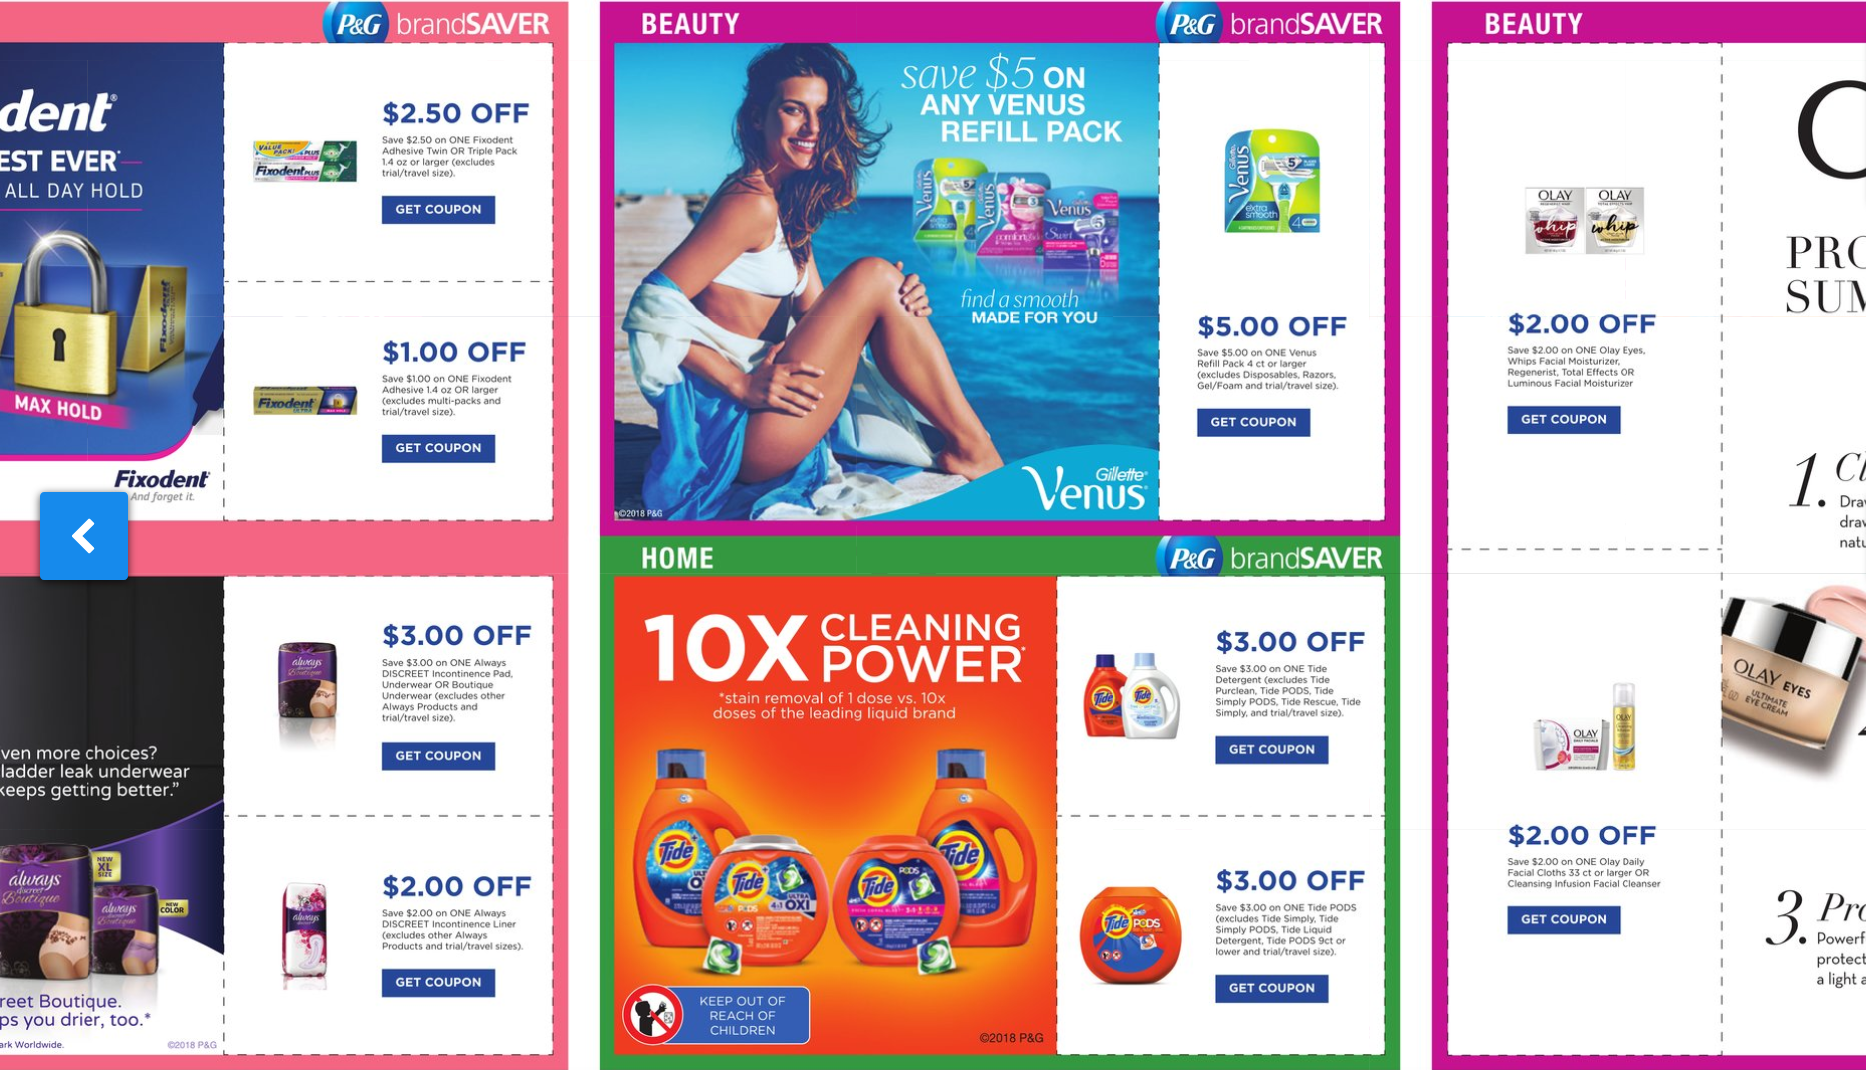 Proctor and gamble coupons online can you make a living gambling